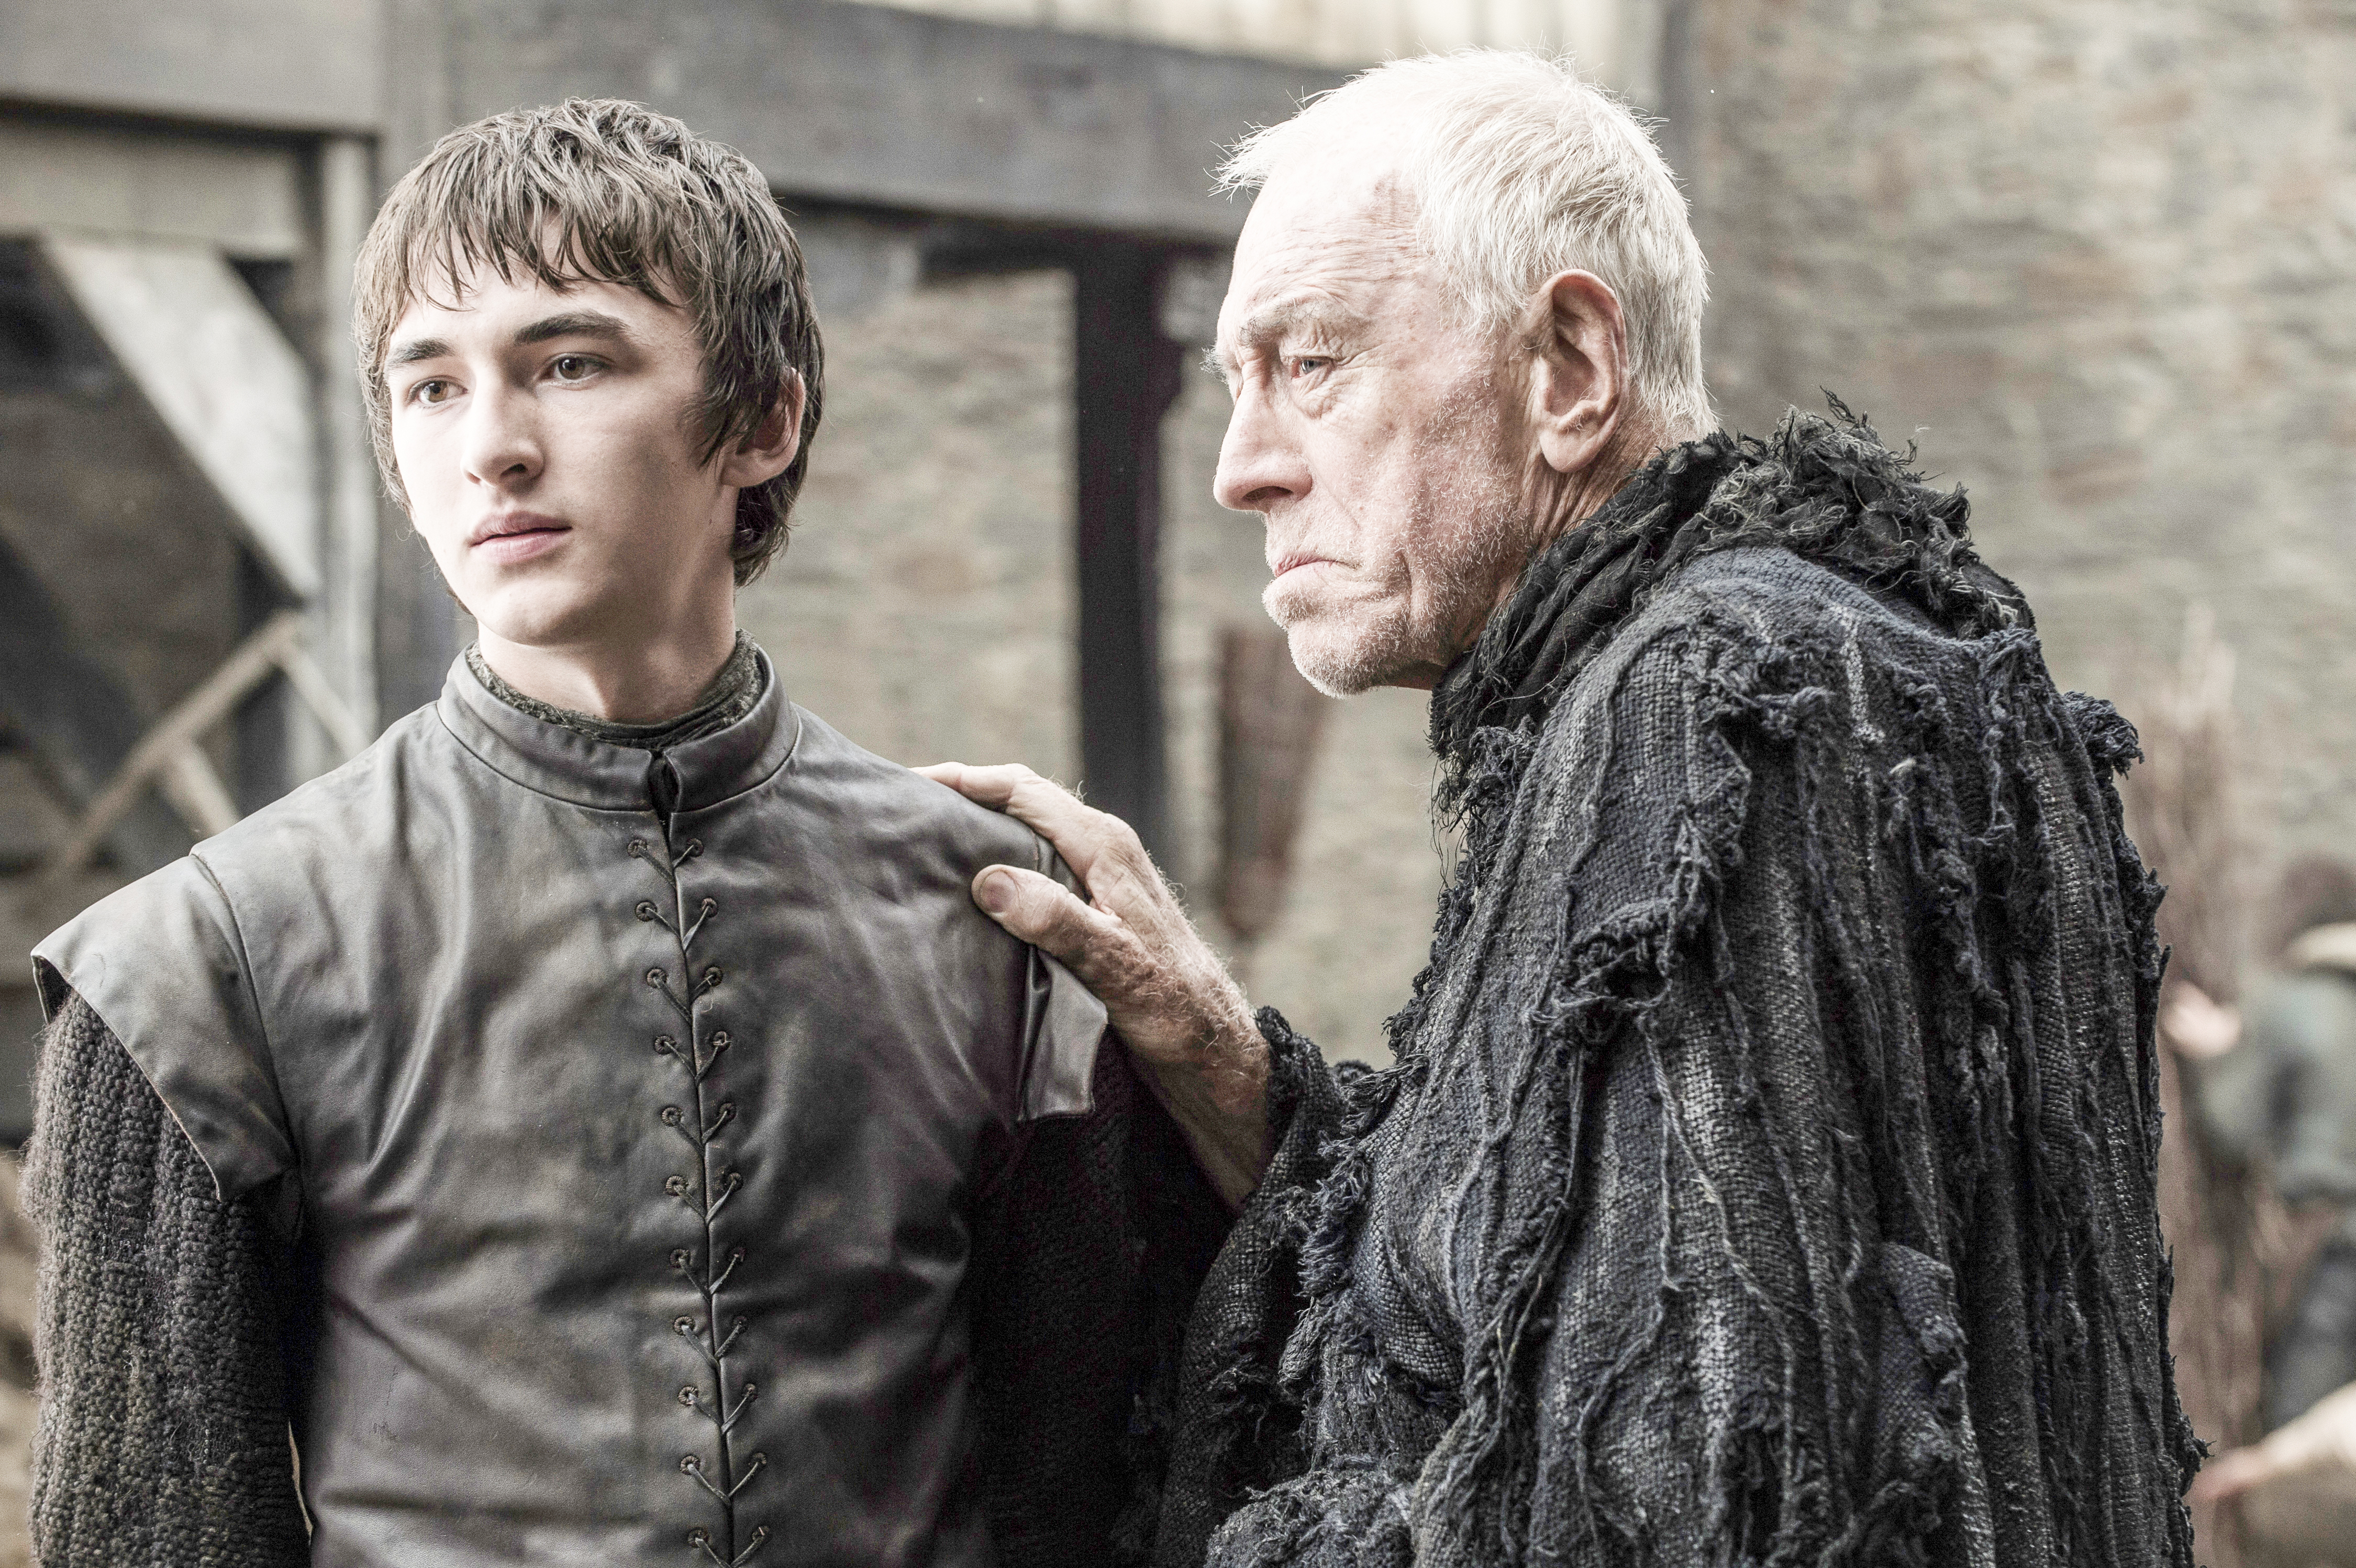 Isaac Hempstead-Wright as Bran Stark and Max von Sydow as the Three-Eyed Raven. Photo by Helen Sloan/HBO